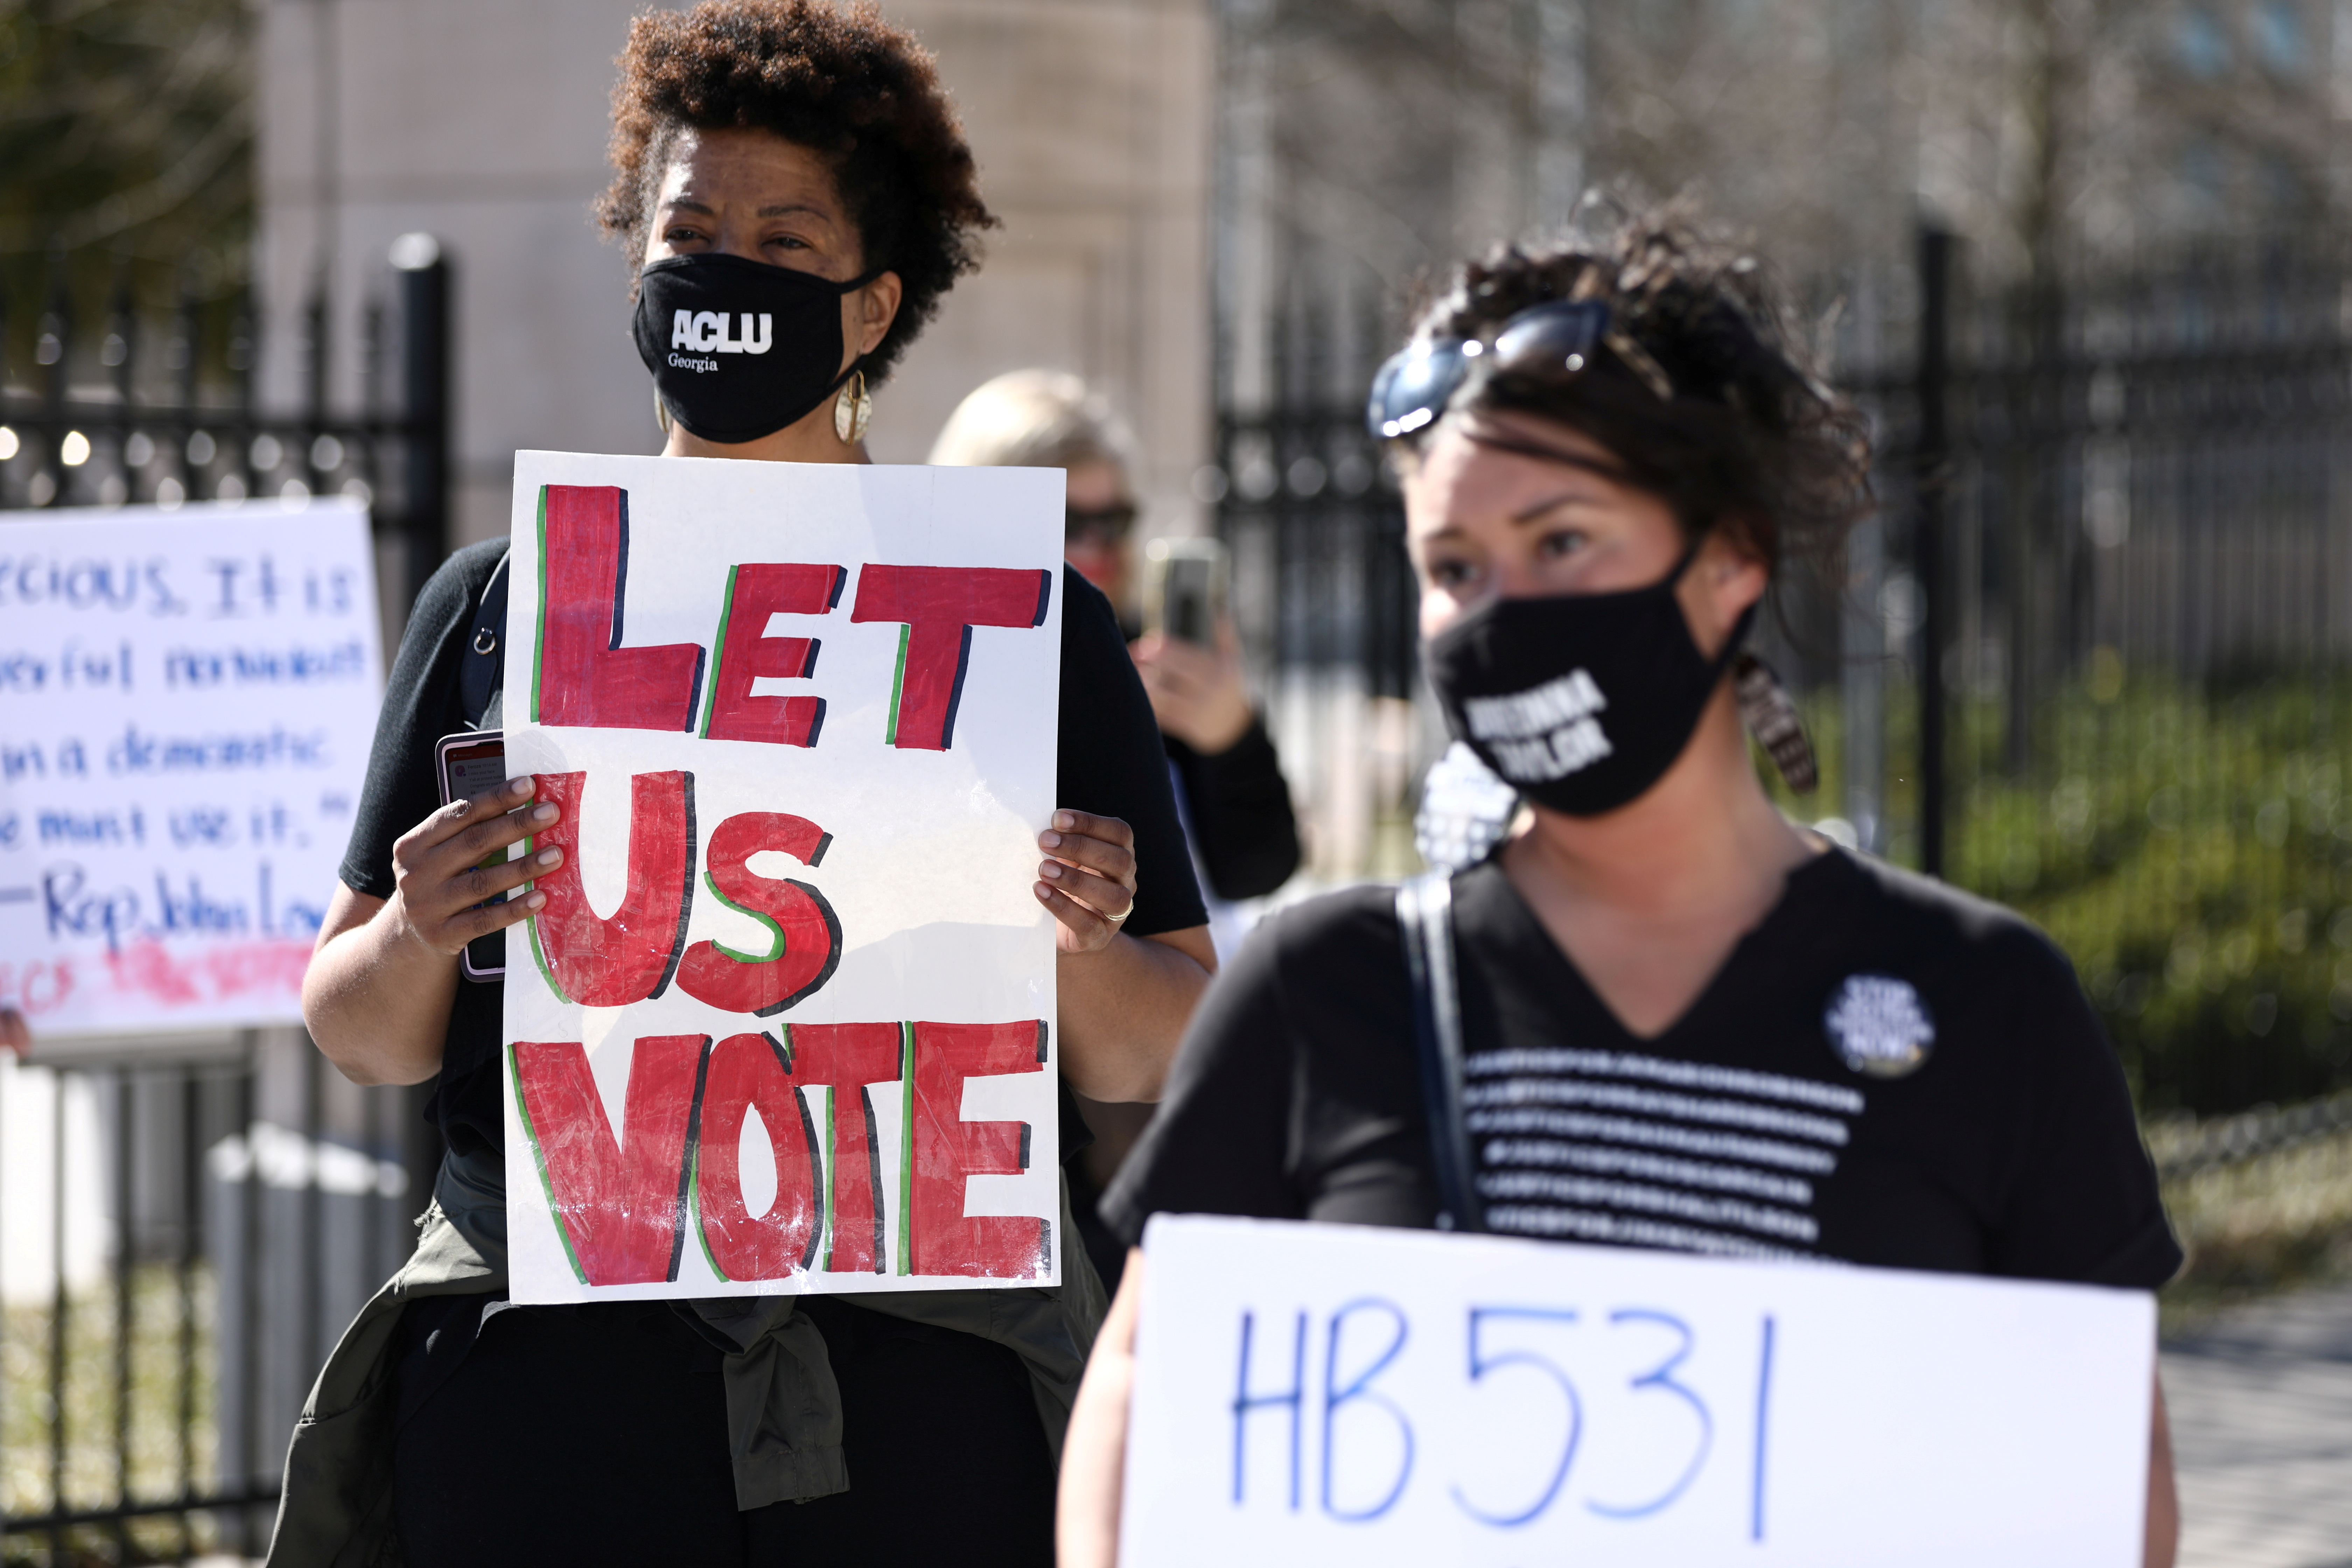 Protesters gather outside of the Georgia State Capitol to protest HB 531, which would place tougher restrictions on voting in Georgia, in Atlanta, Georgia, U.S. March 4, 2021. REUTERS/Dustin Chambers/File Photo